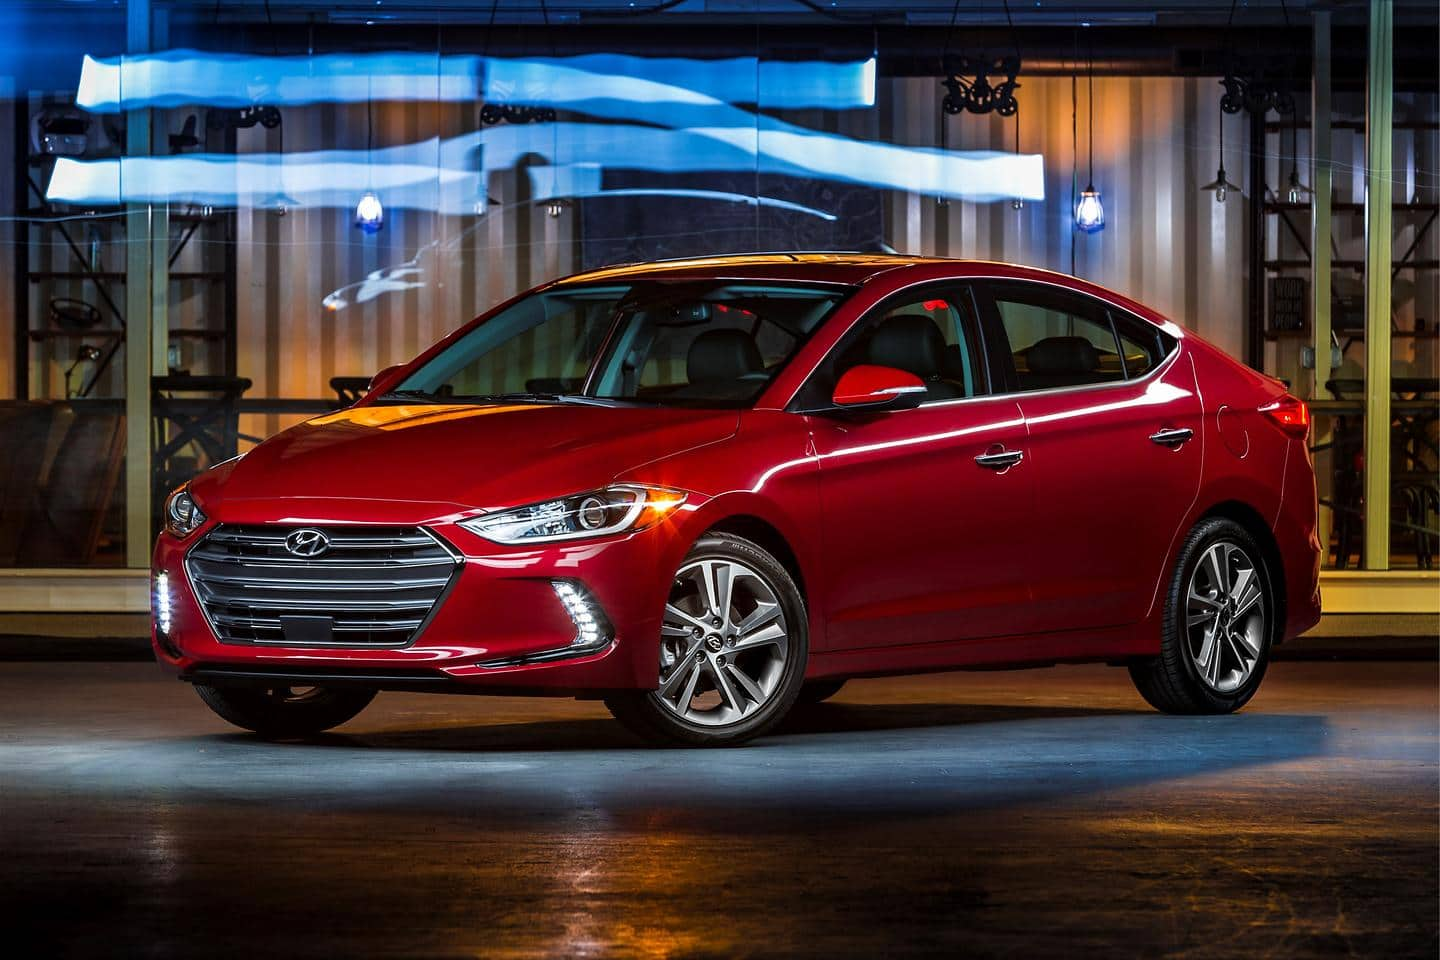 Hyundai Elantra Wins 2016 International Design Award